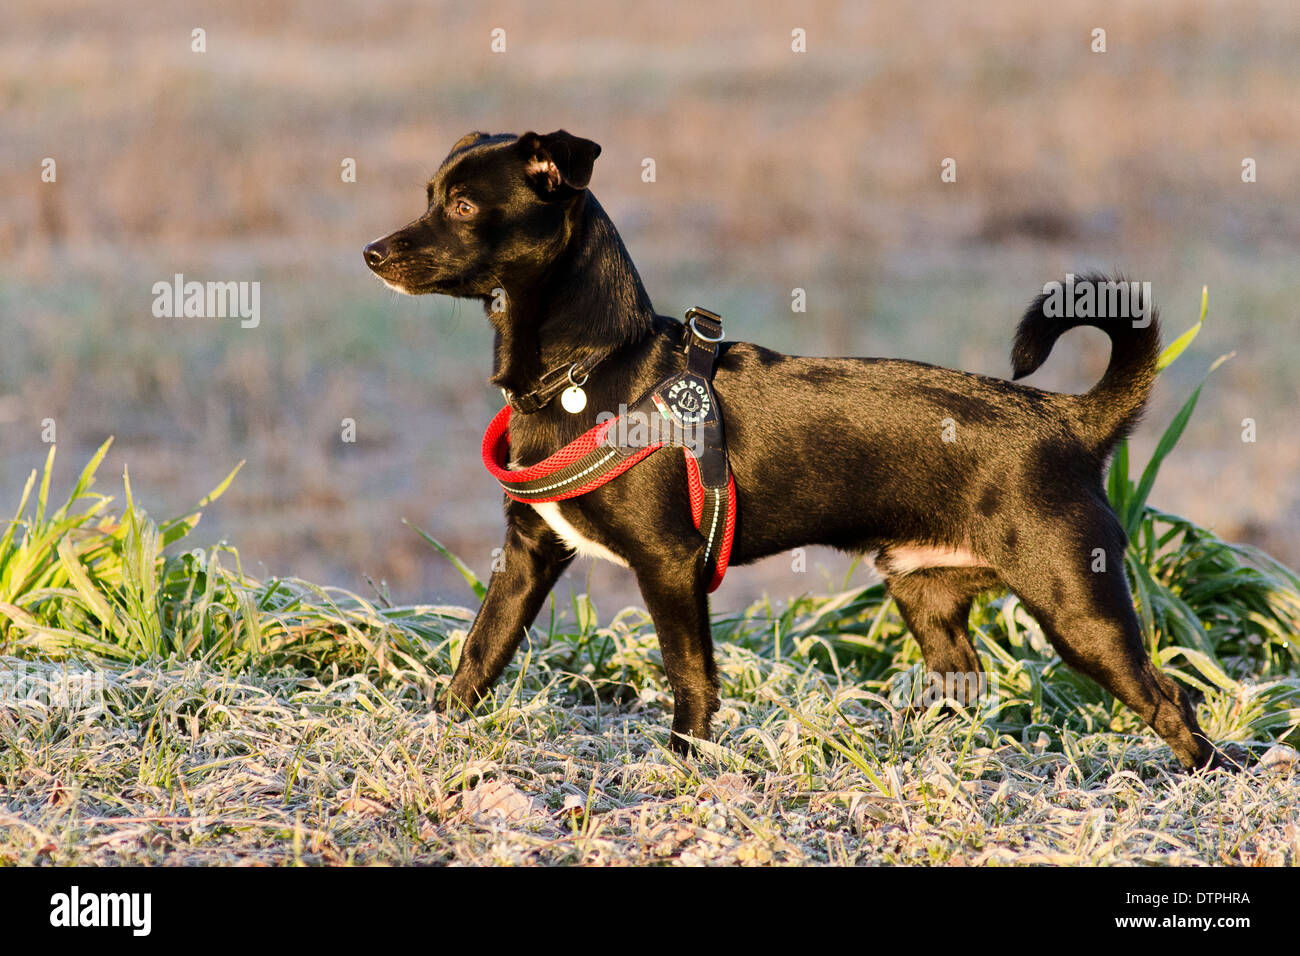 The proud funny doggy - Stock Image